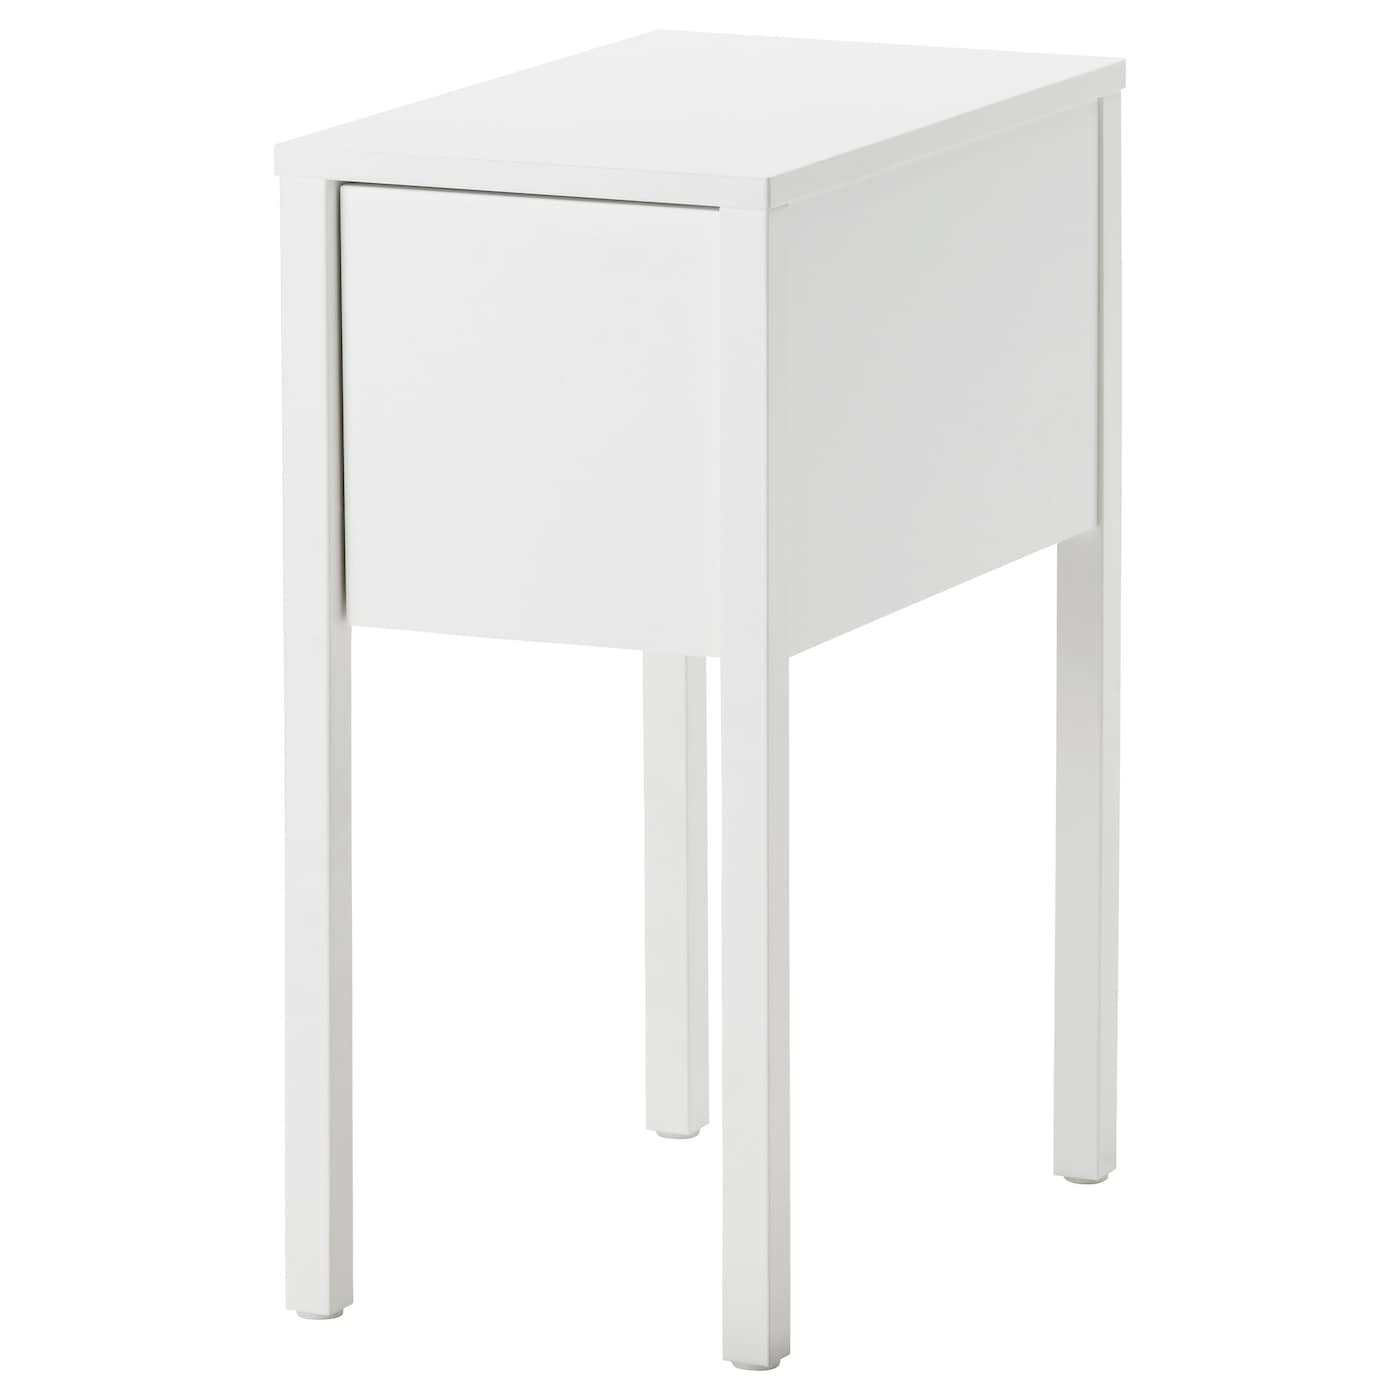 Nordli bedside table white 30x50 cm ikea - Petite table de nuit ...